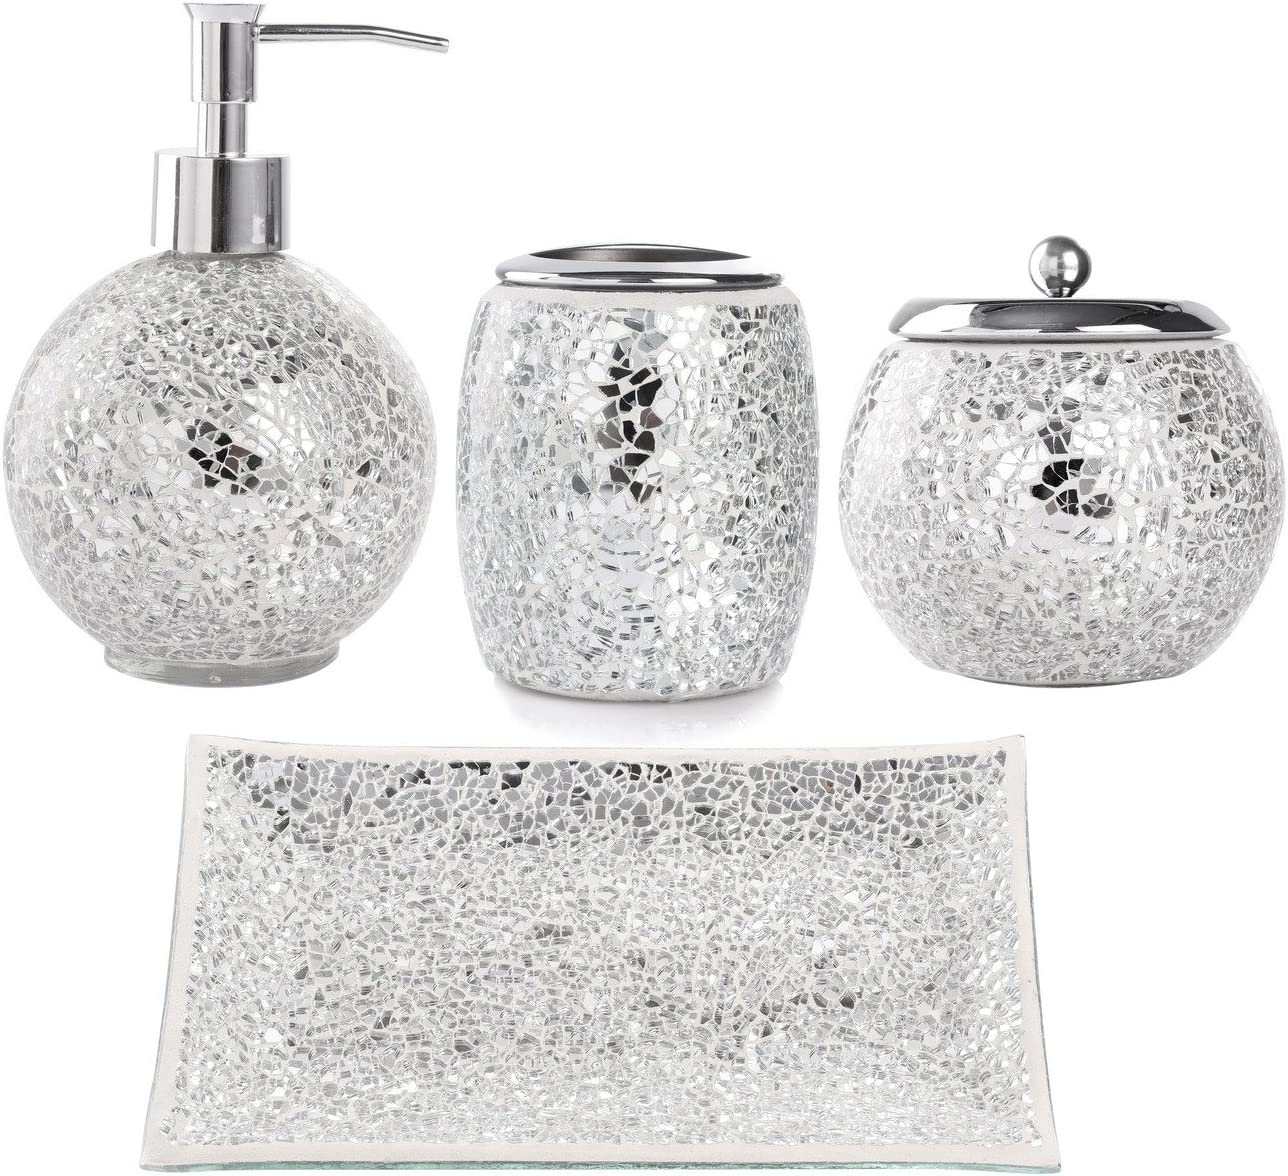 Whole Housewares Bathroom Accessories Set, 4-Piece Glass Mosaic Bath Accessory Completes with Lotion Dispenser/Soap Pump, Cotton Jar, Vanity Tray, Toothbrush Holder (Silver)